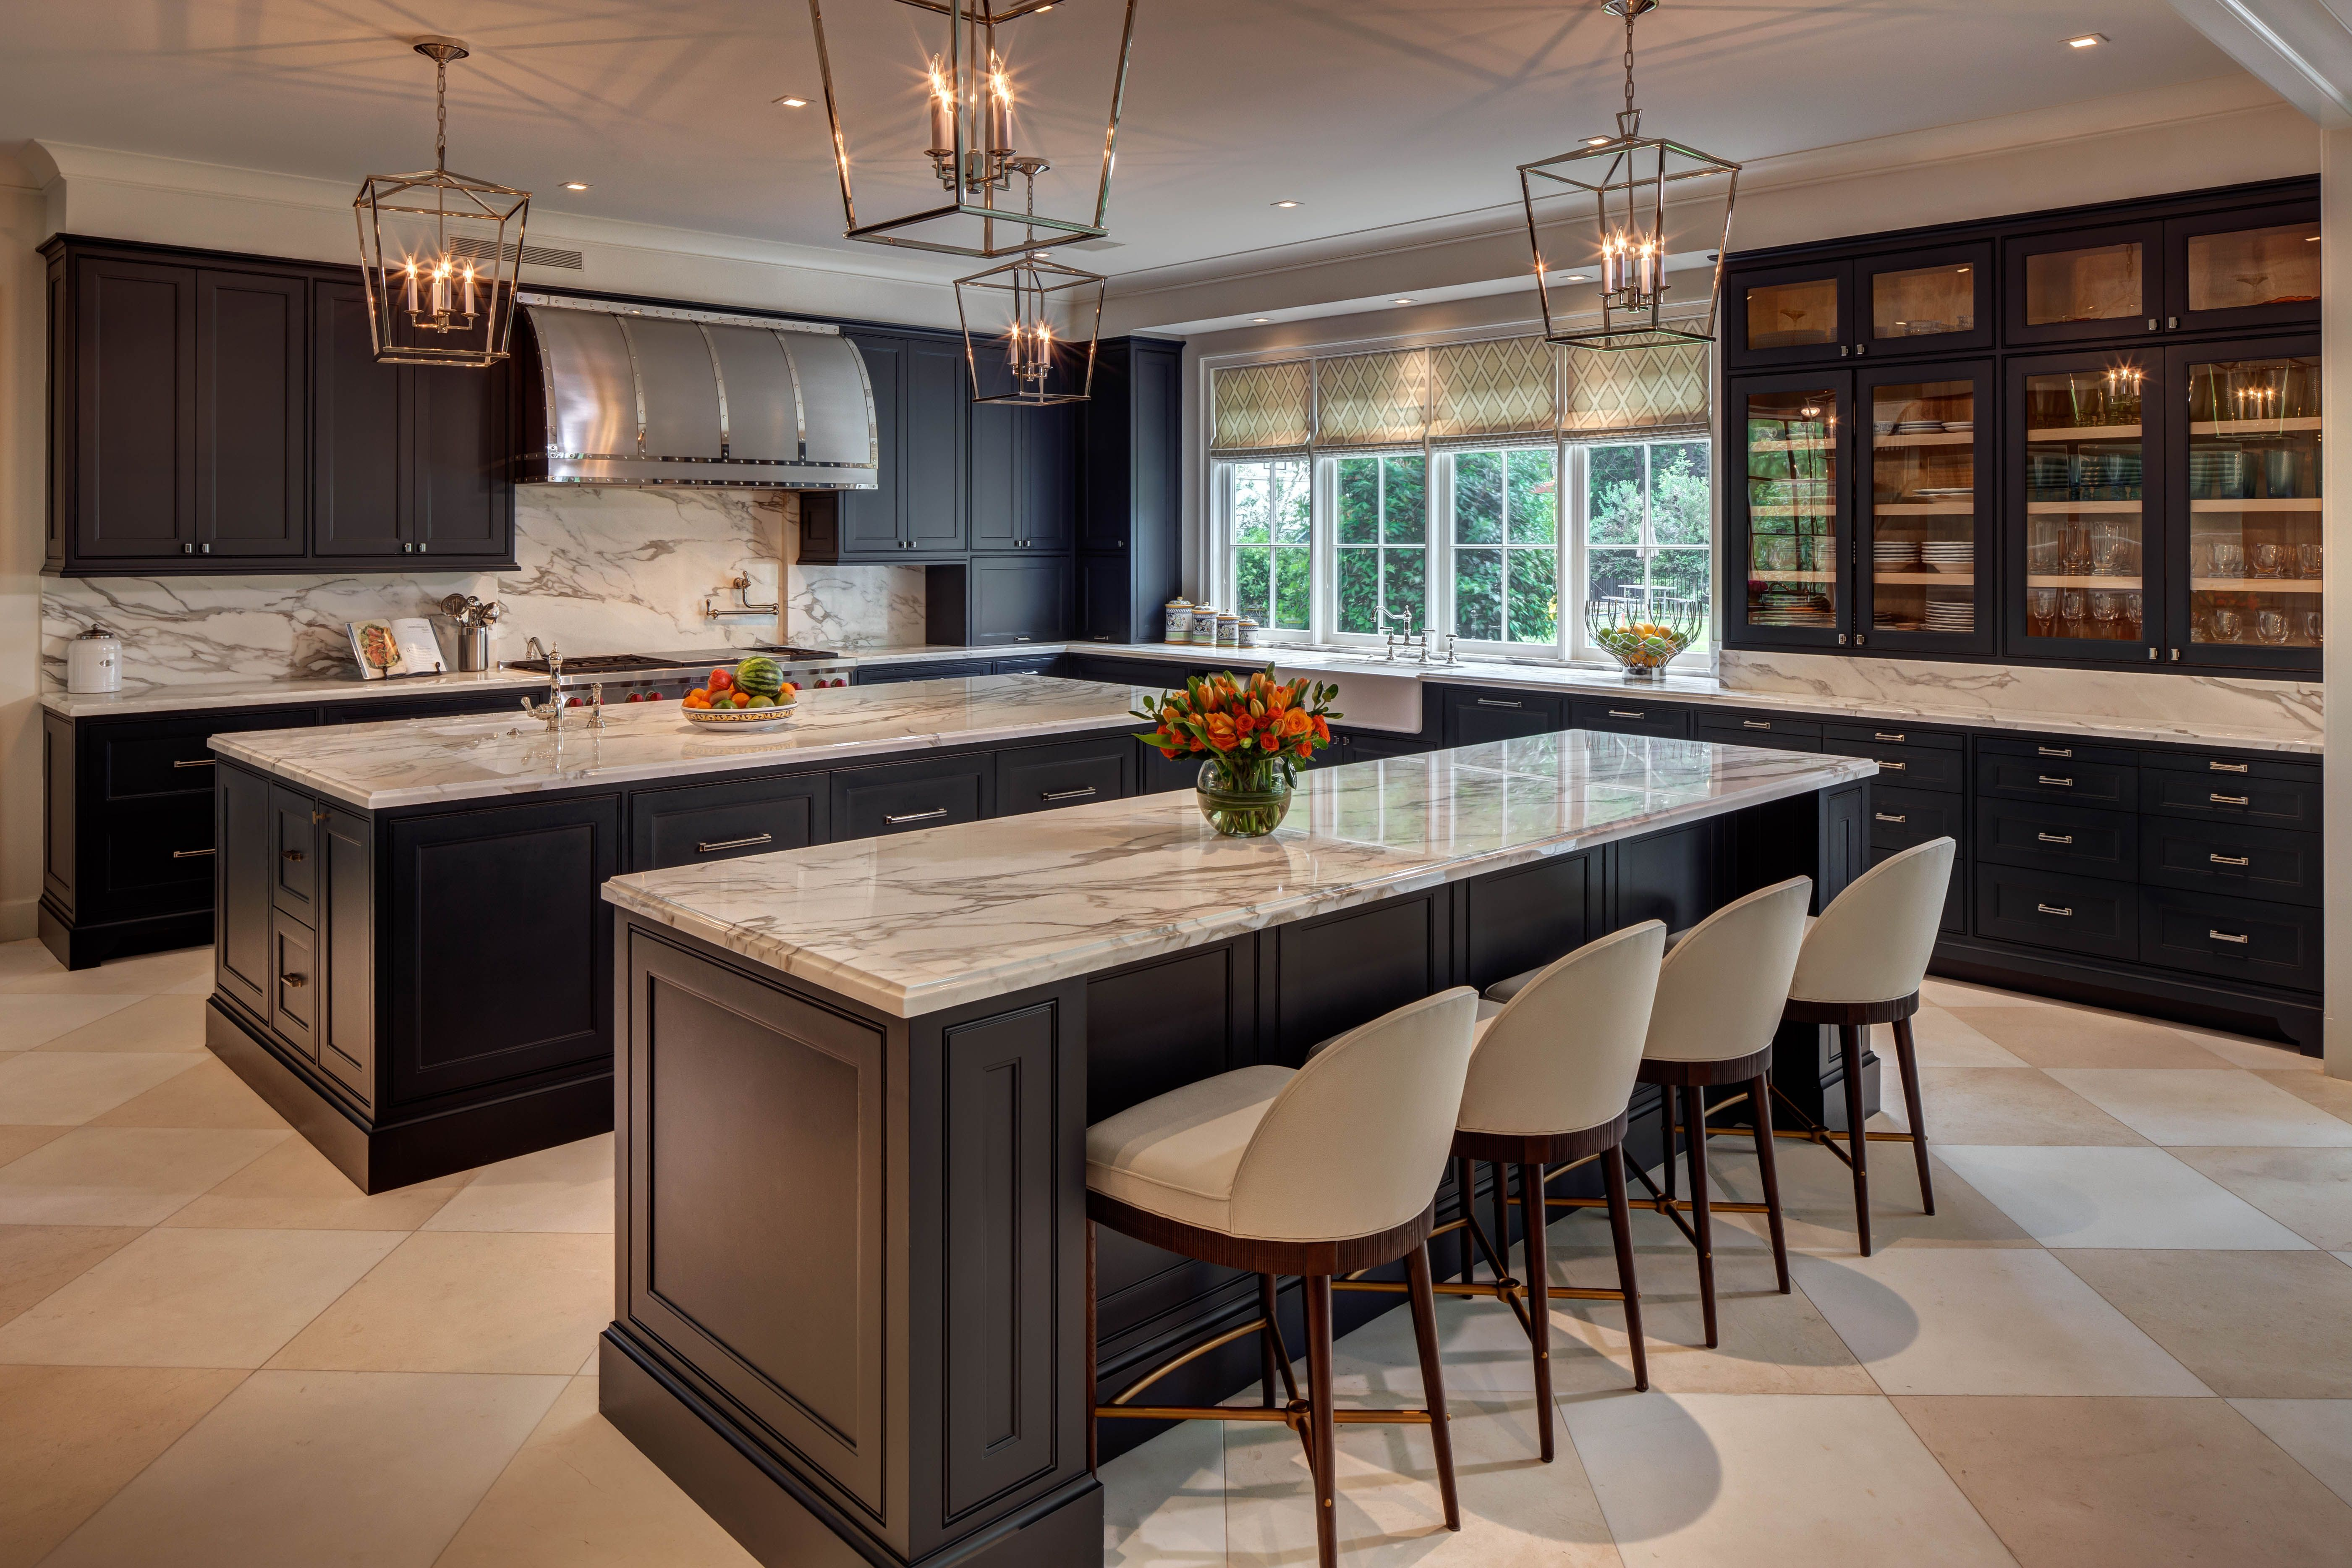 Dark Cabinets And Light Counters Bring A Fun Color Contrast To